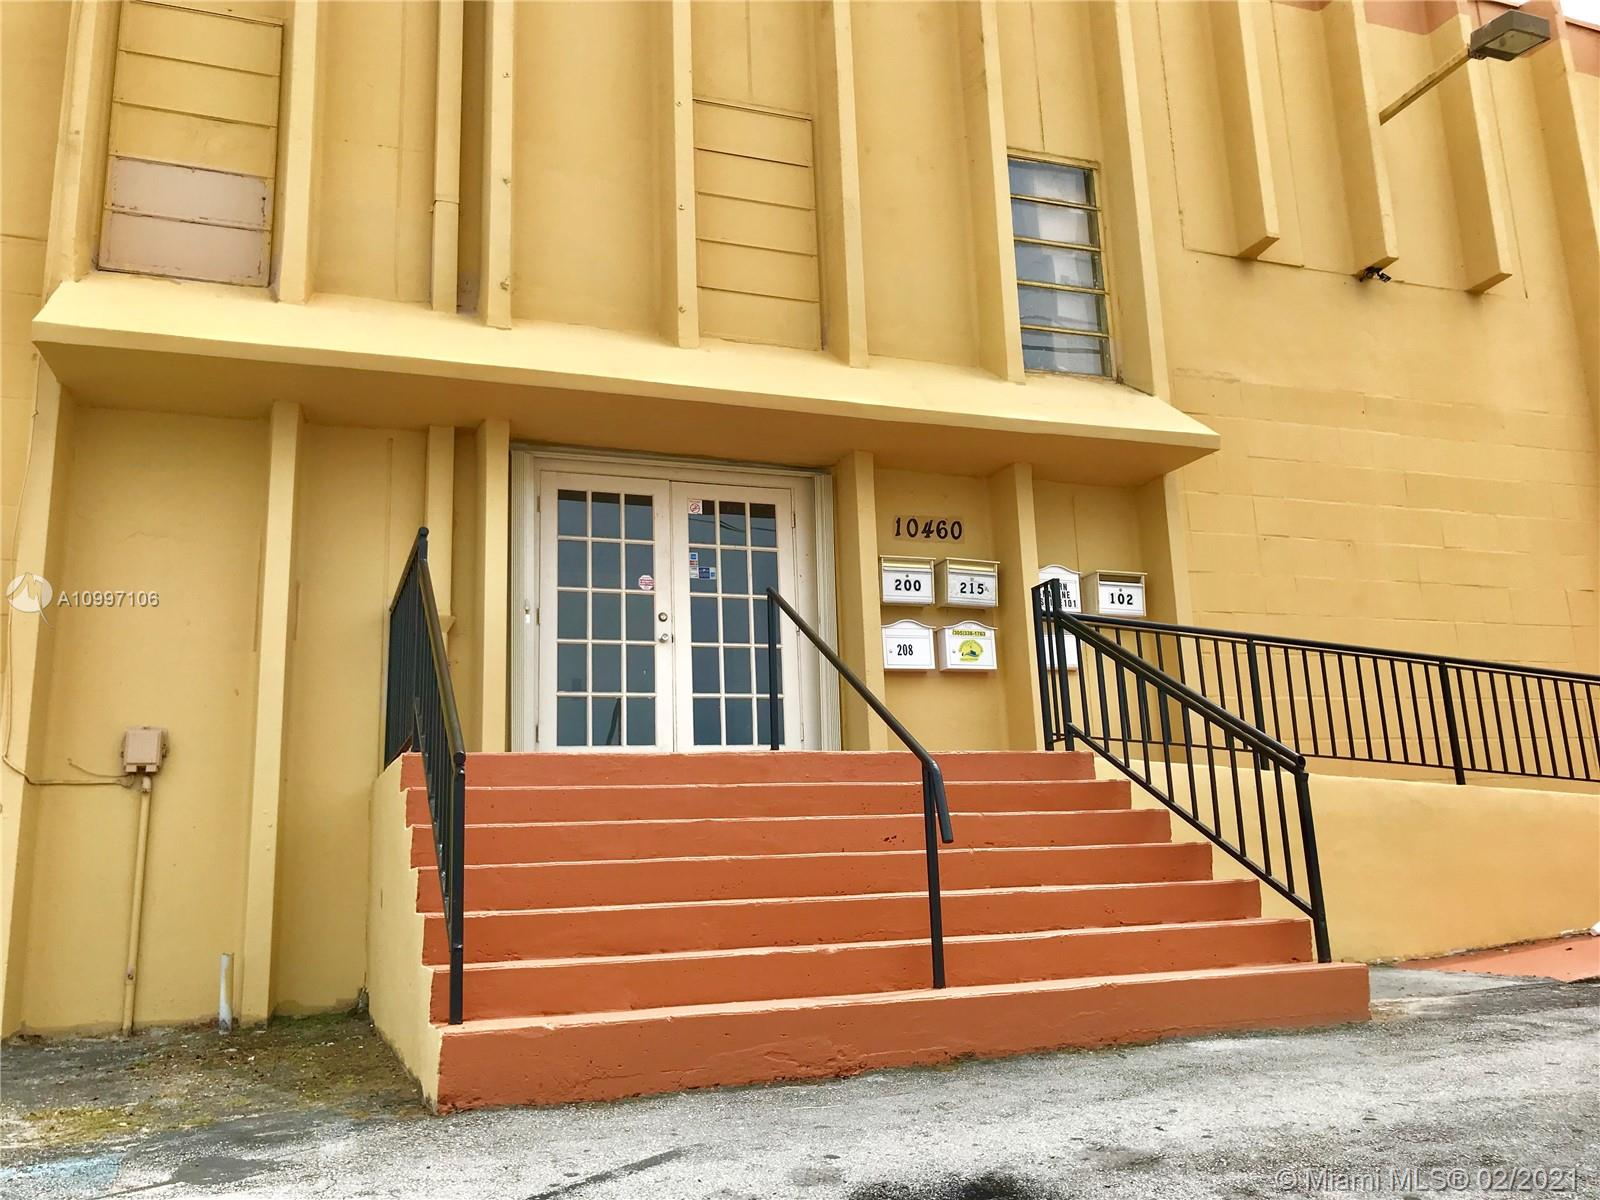 Superb location for private offices!! Free Standing building right on SW 186 Street and 104 Ct, only 0.3 mile east to US 1 (S Dixie HWY) and 0.5 mile west to Florida Turnpike. Seventeen executive offices with a total of 5,182 SF available. May lease entire 5,182 SF or divisable (minimum divisible 161 SF). Plenty of parking spaces. Easy to show. Please bring all offers. Contact listing agent for more info.